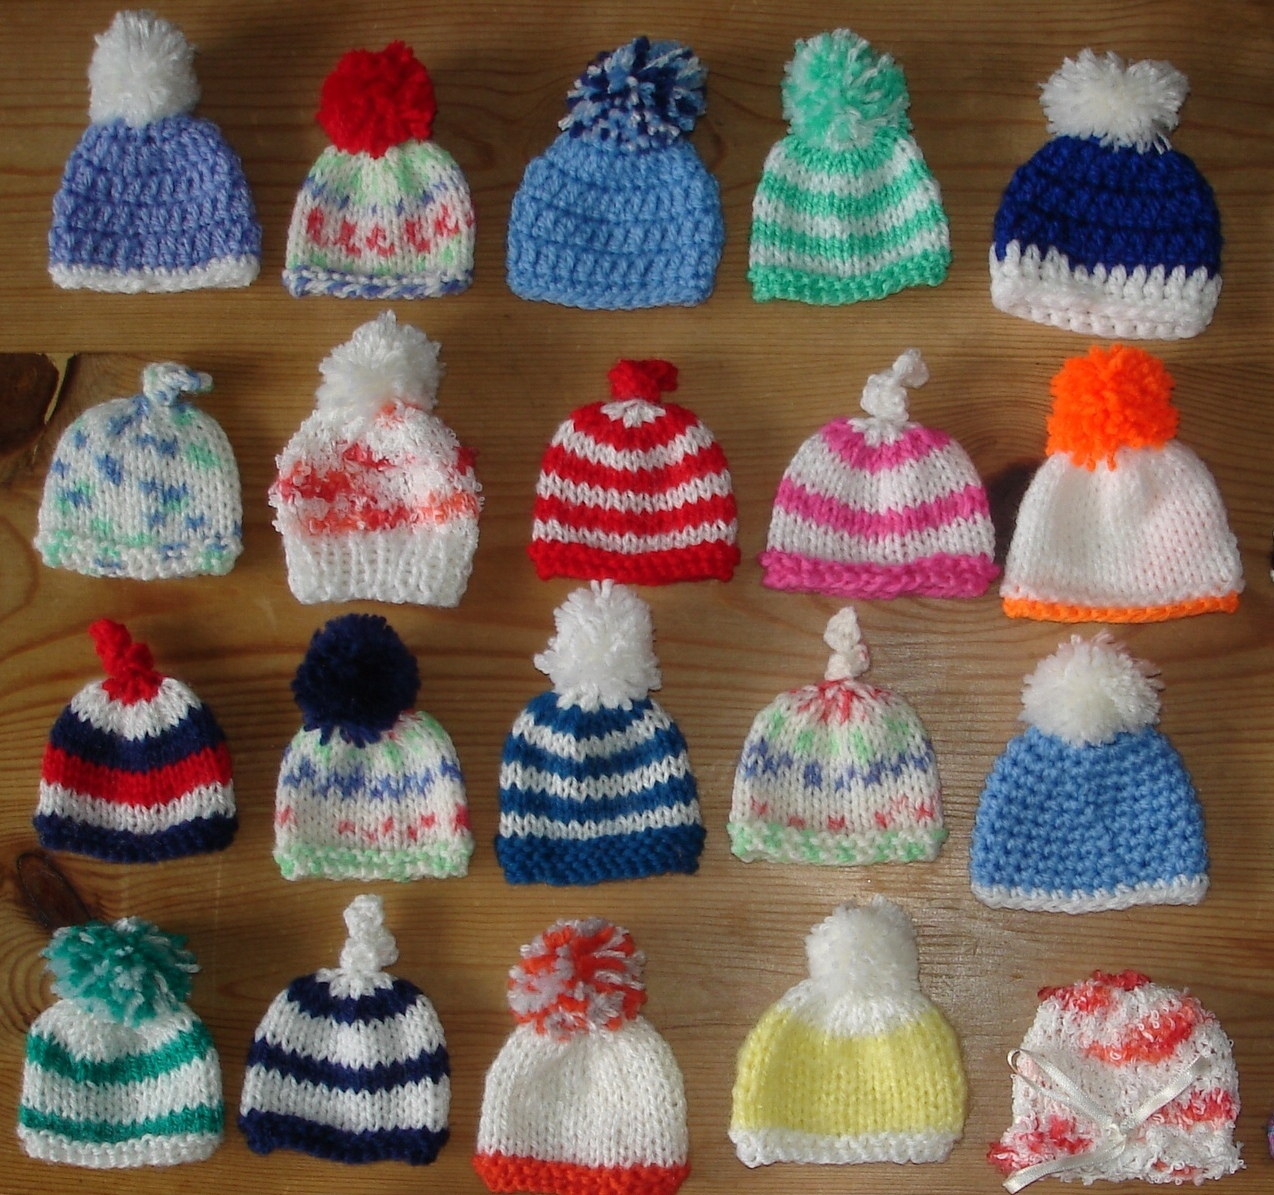 Knitting Patterns For Innocent Smoothie Hats : mariannas lazy daisy days: AGE UK ~ Innocent Smoothie Hats